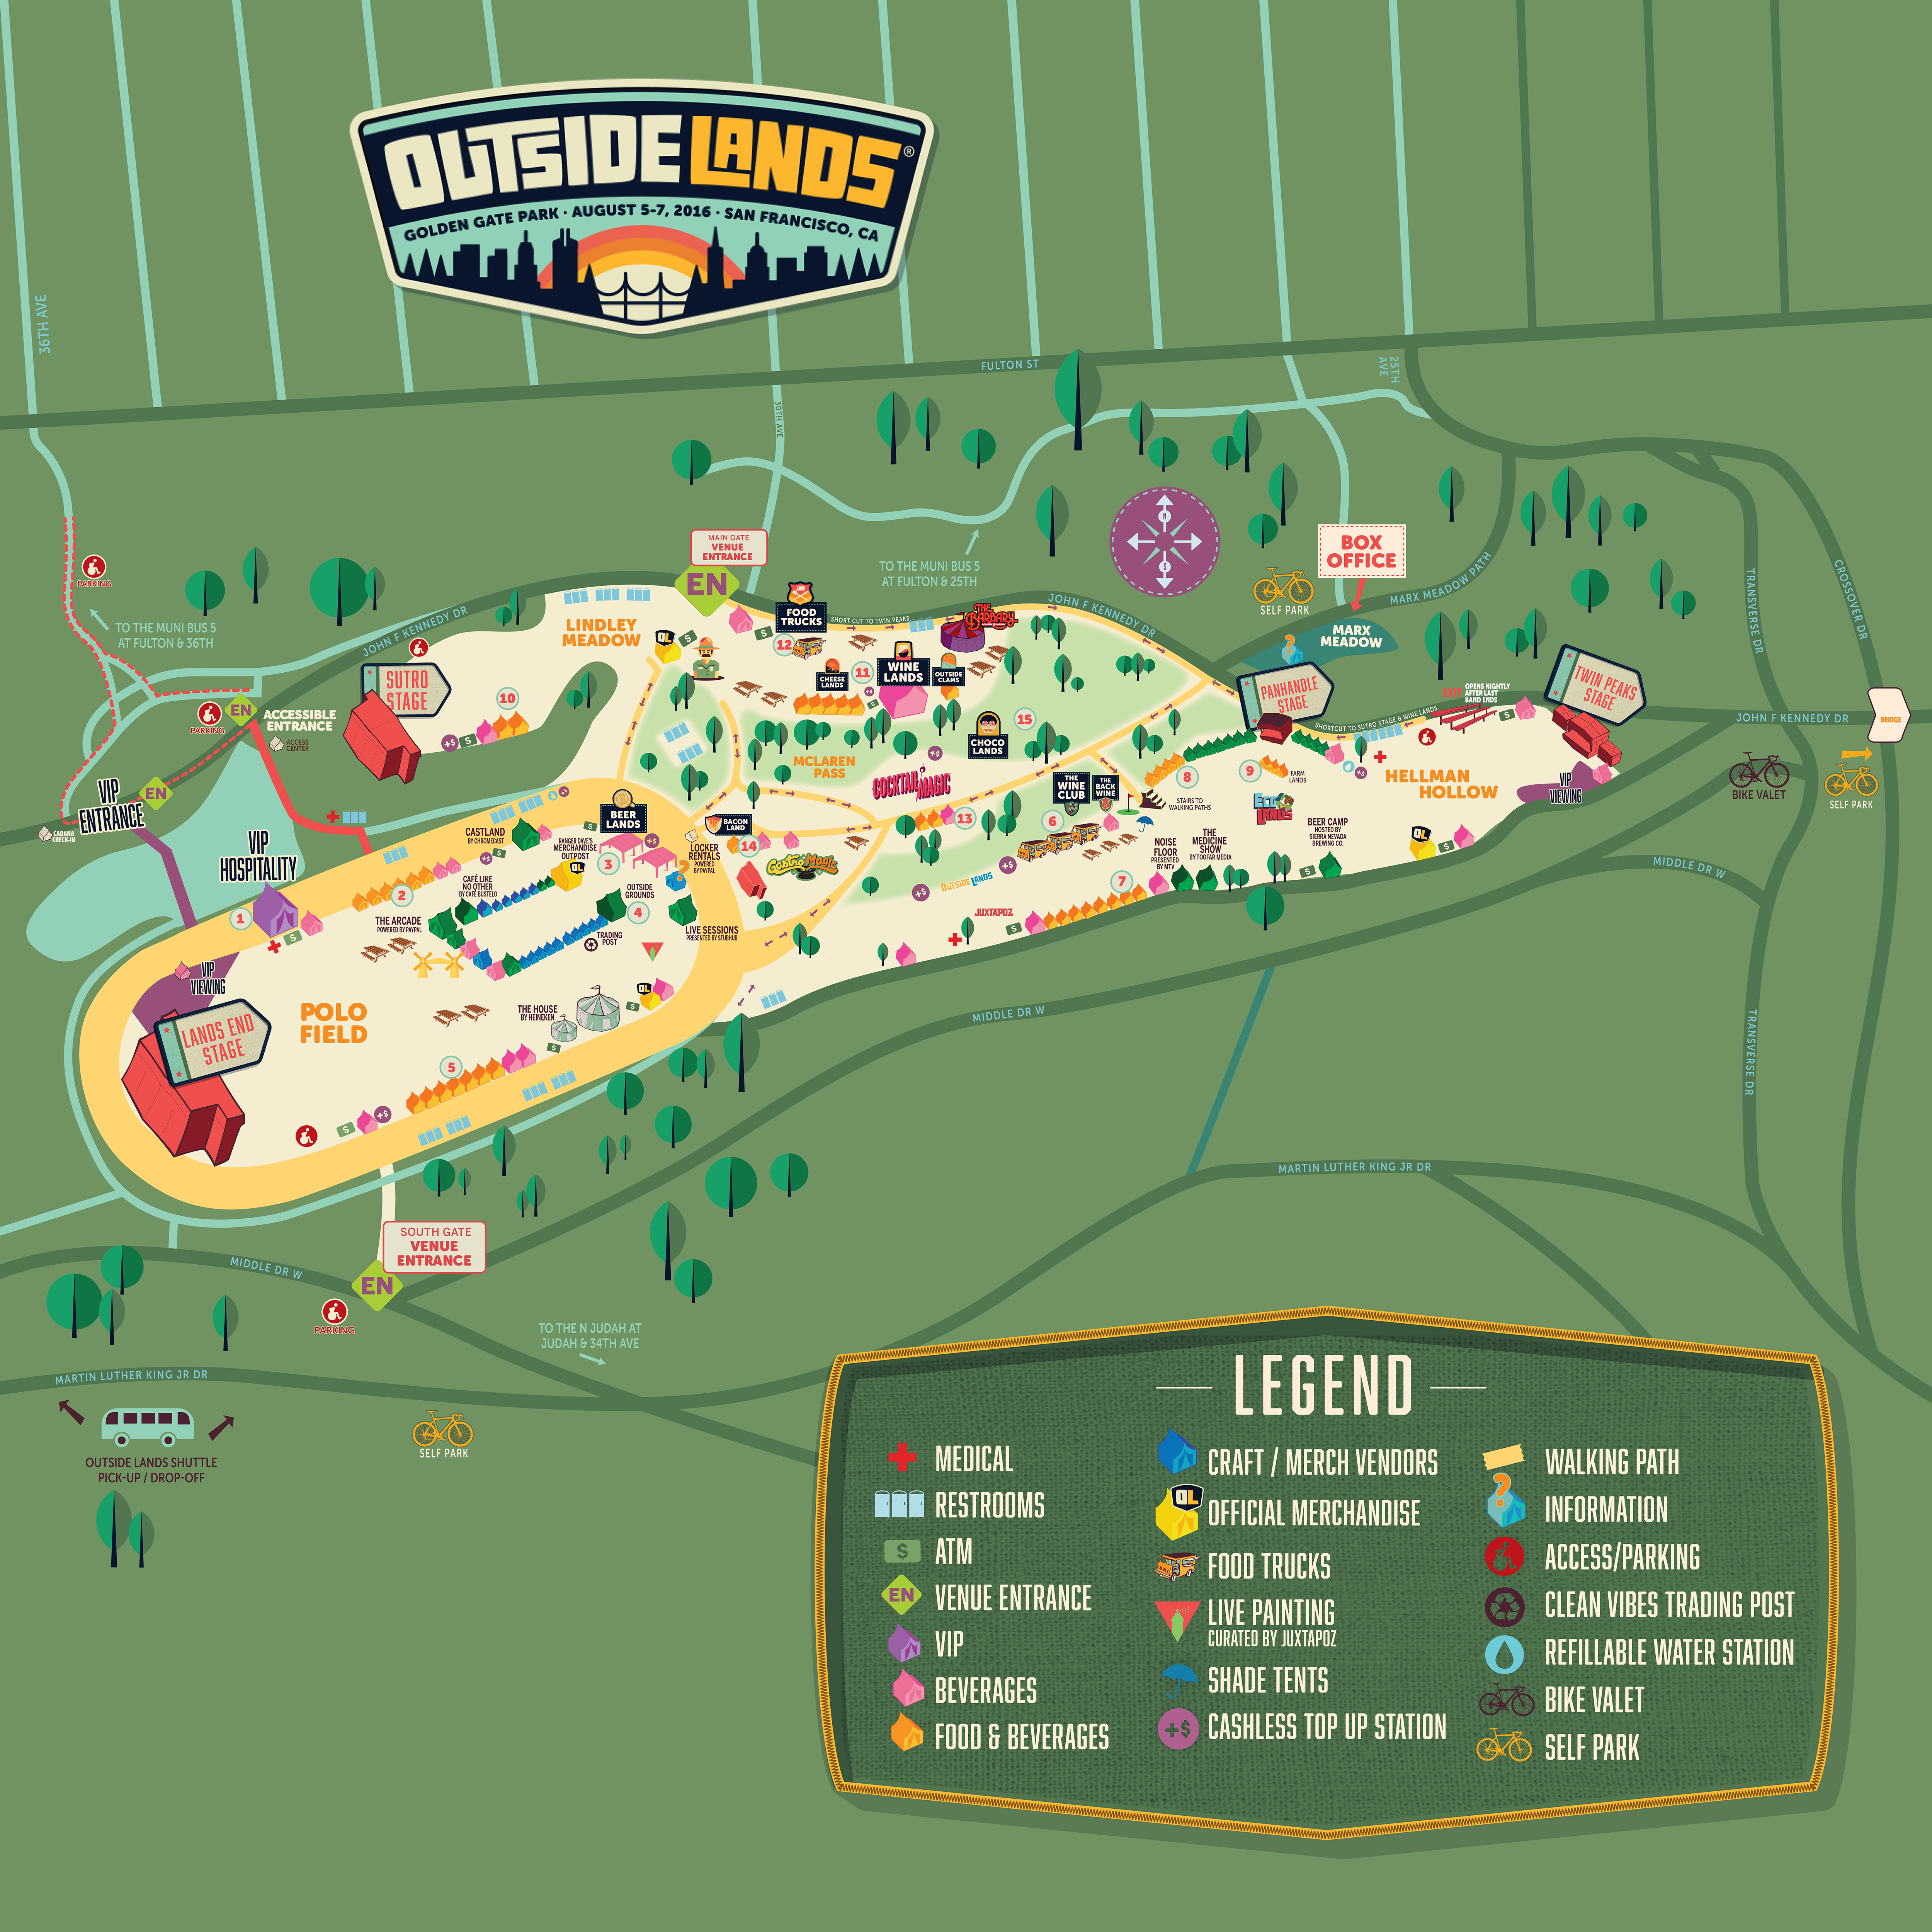 2016 neighbor u2019s guide to the 9th annual outside lands